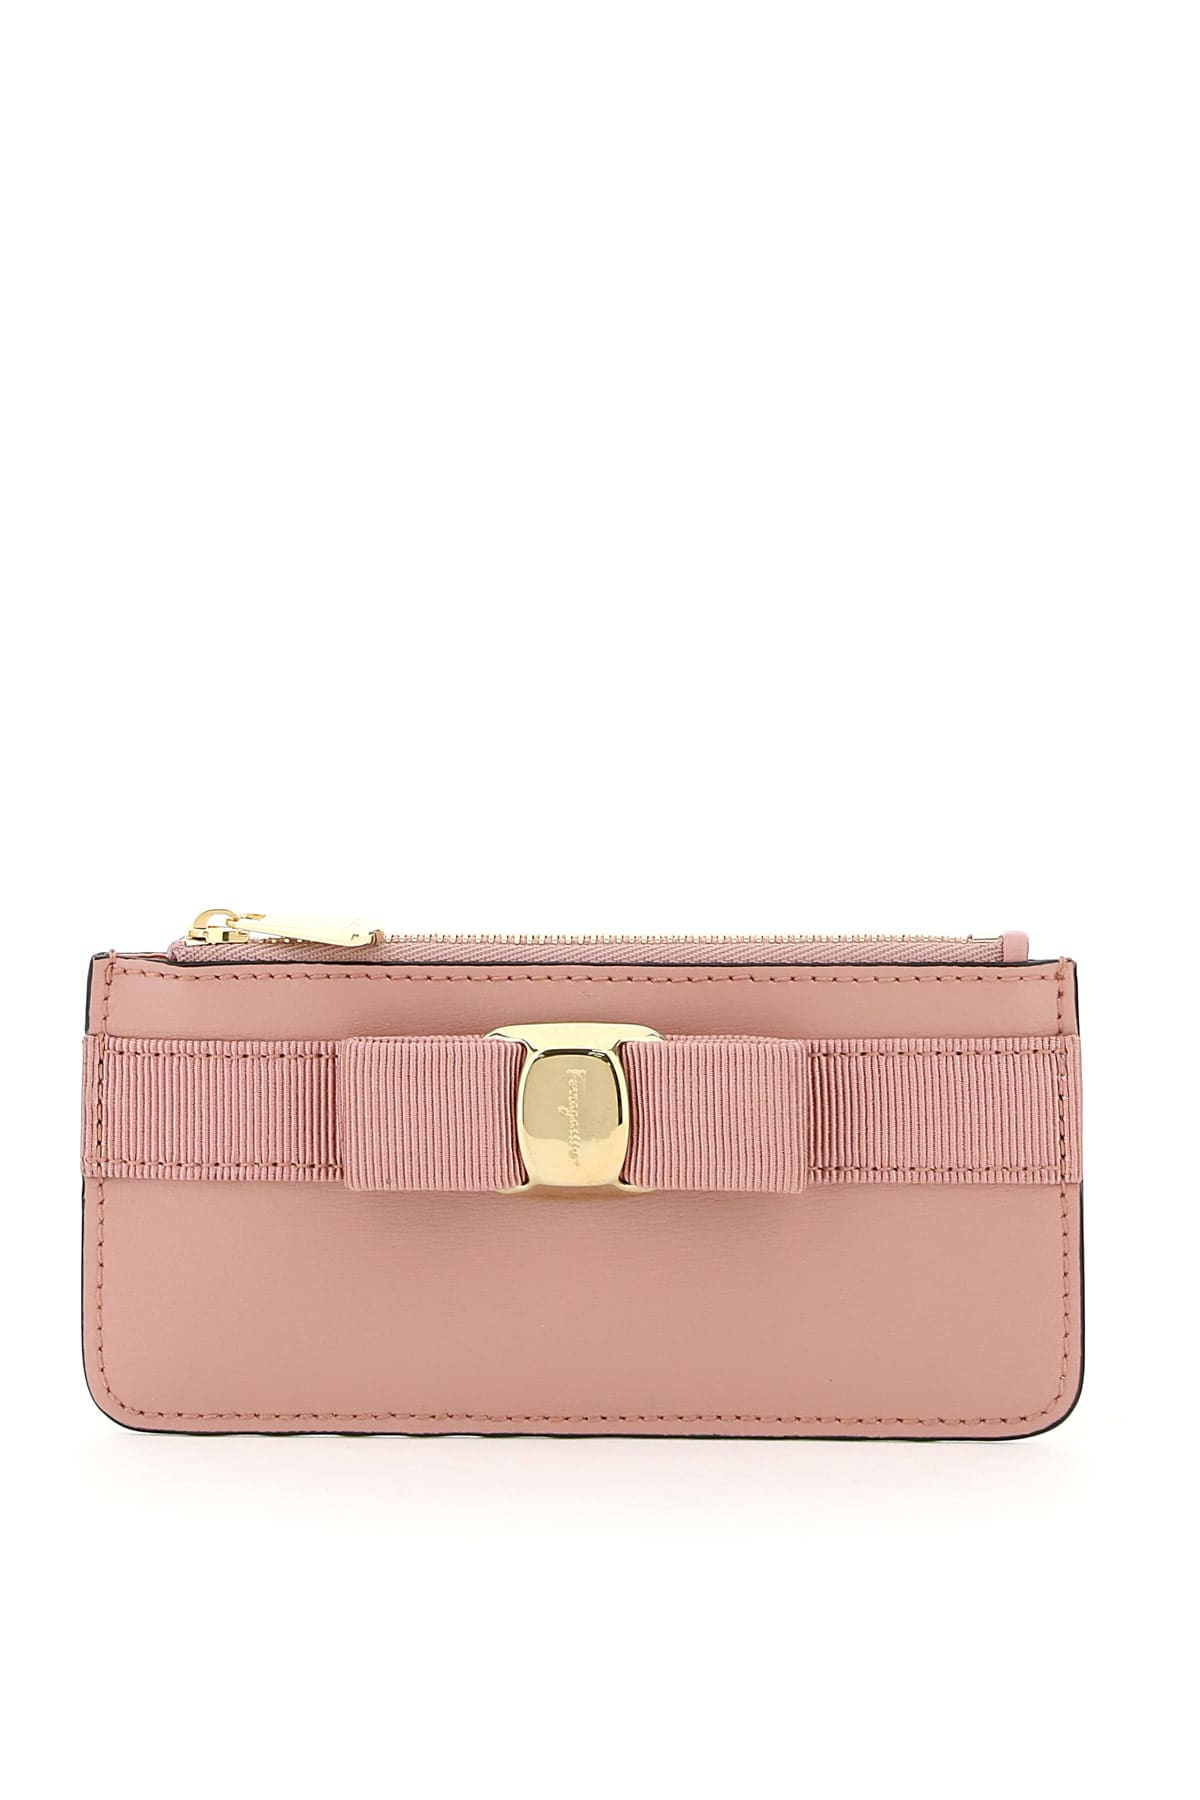 Salvatore Ferragamo CARDHOLDER POUCH WITH VARA BOW